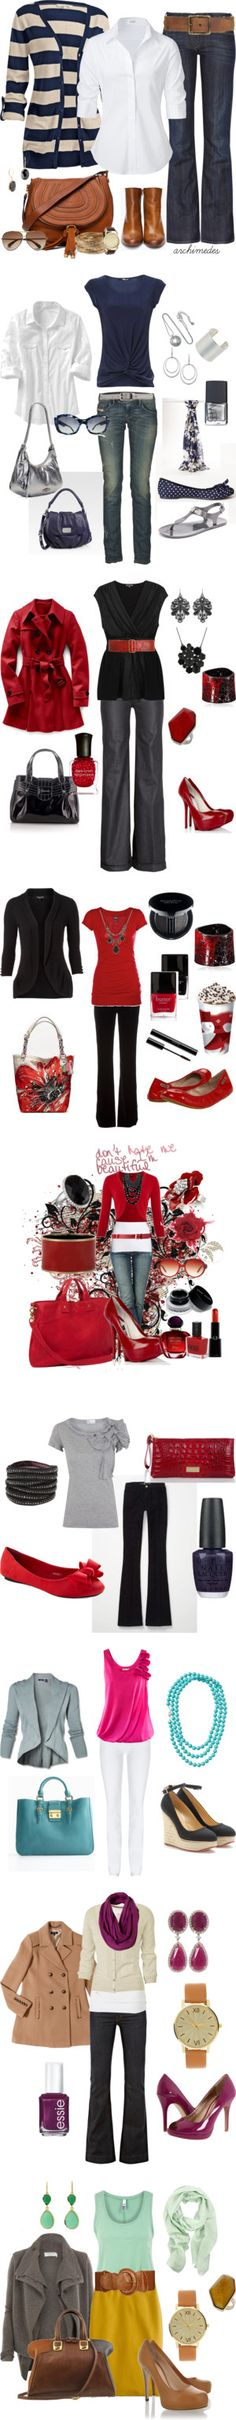 """Workin' 9-5"" by riddlechick on Polyvore"